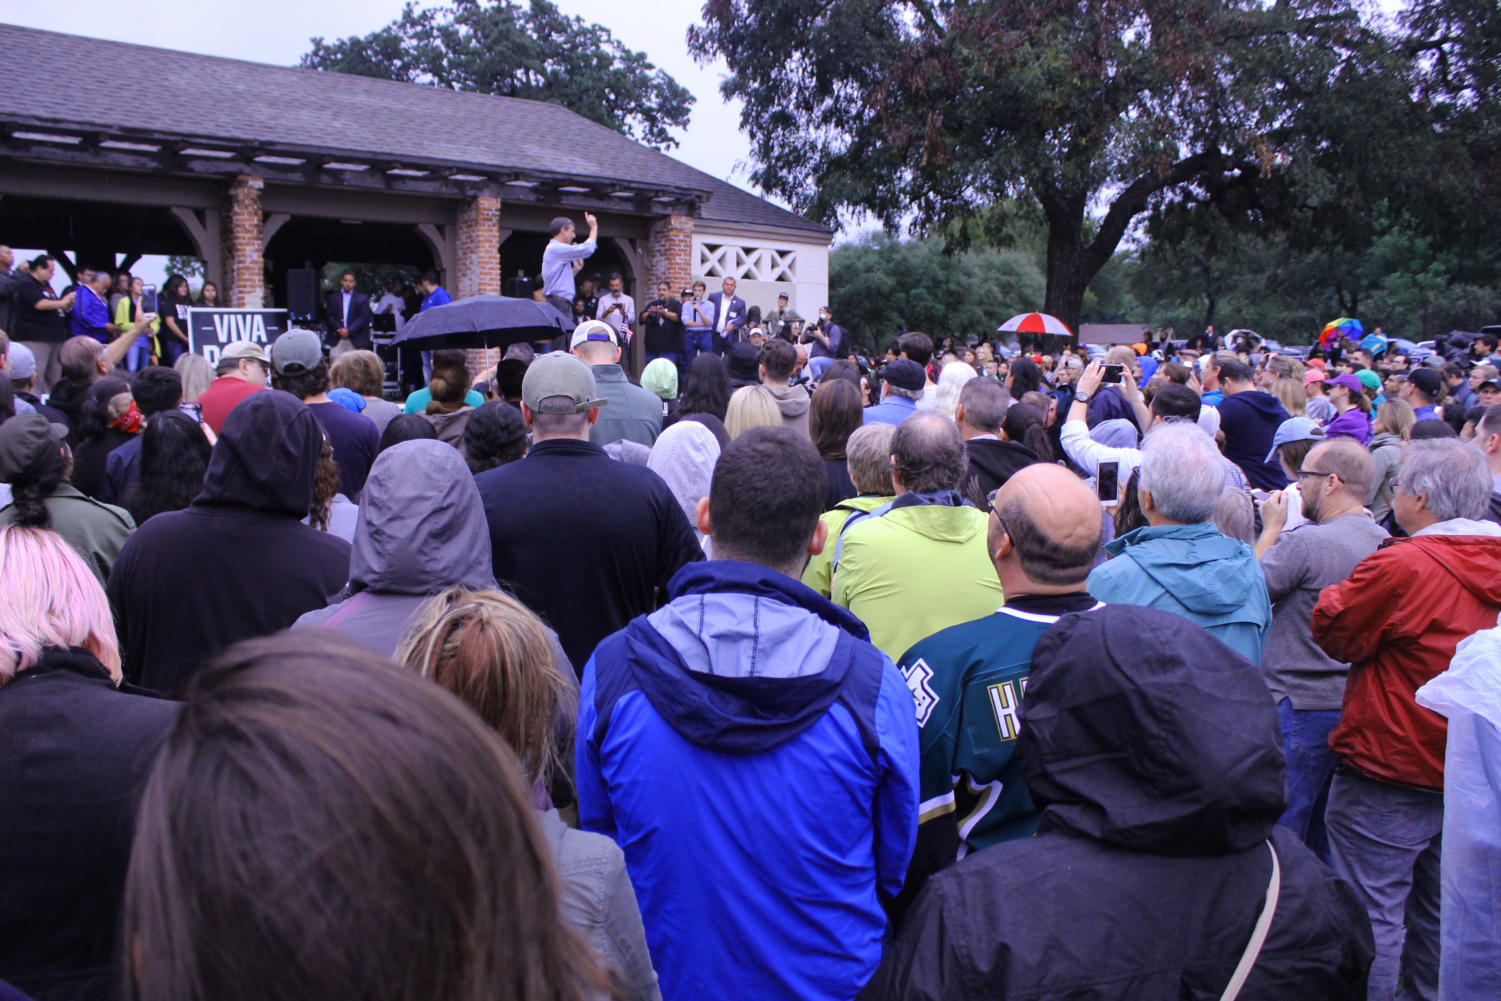 Congressman Beto O'Rourke held a rally in Fort Worth